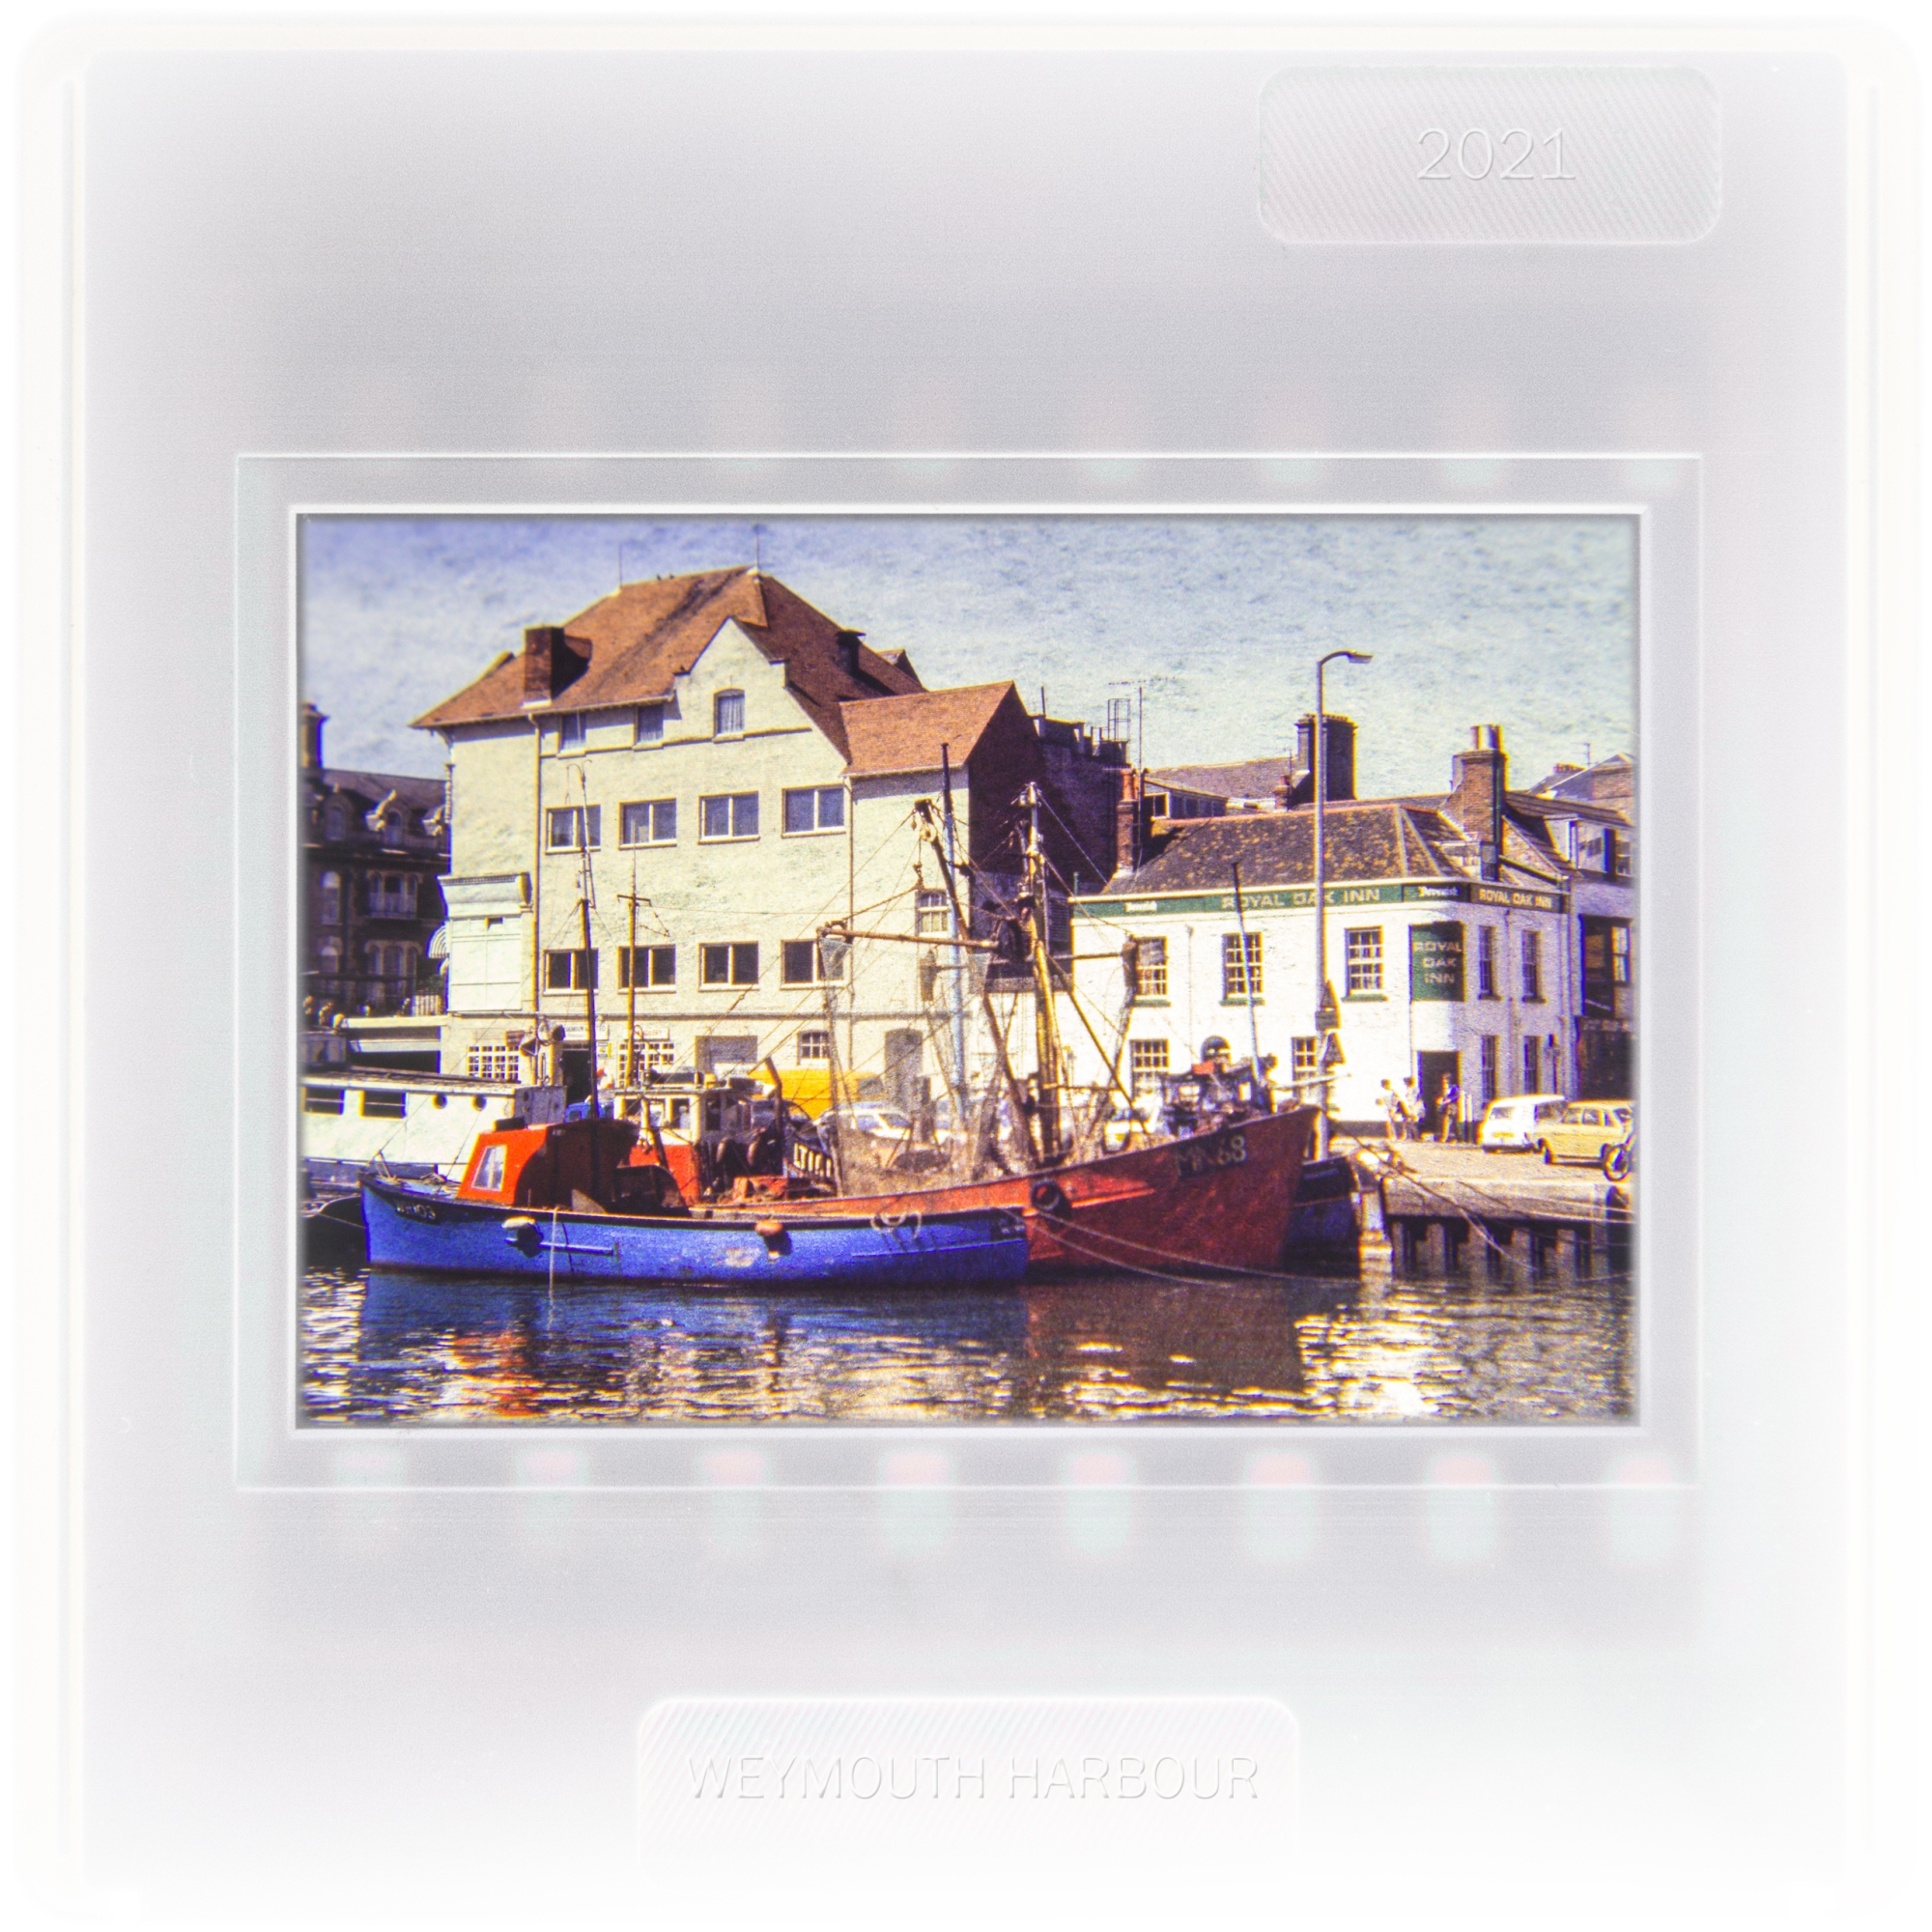 Weymouth Harbour sometime in the 1980s